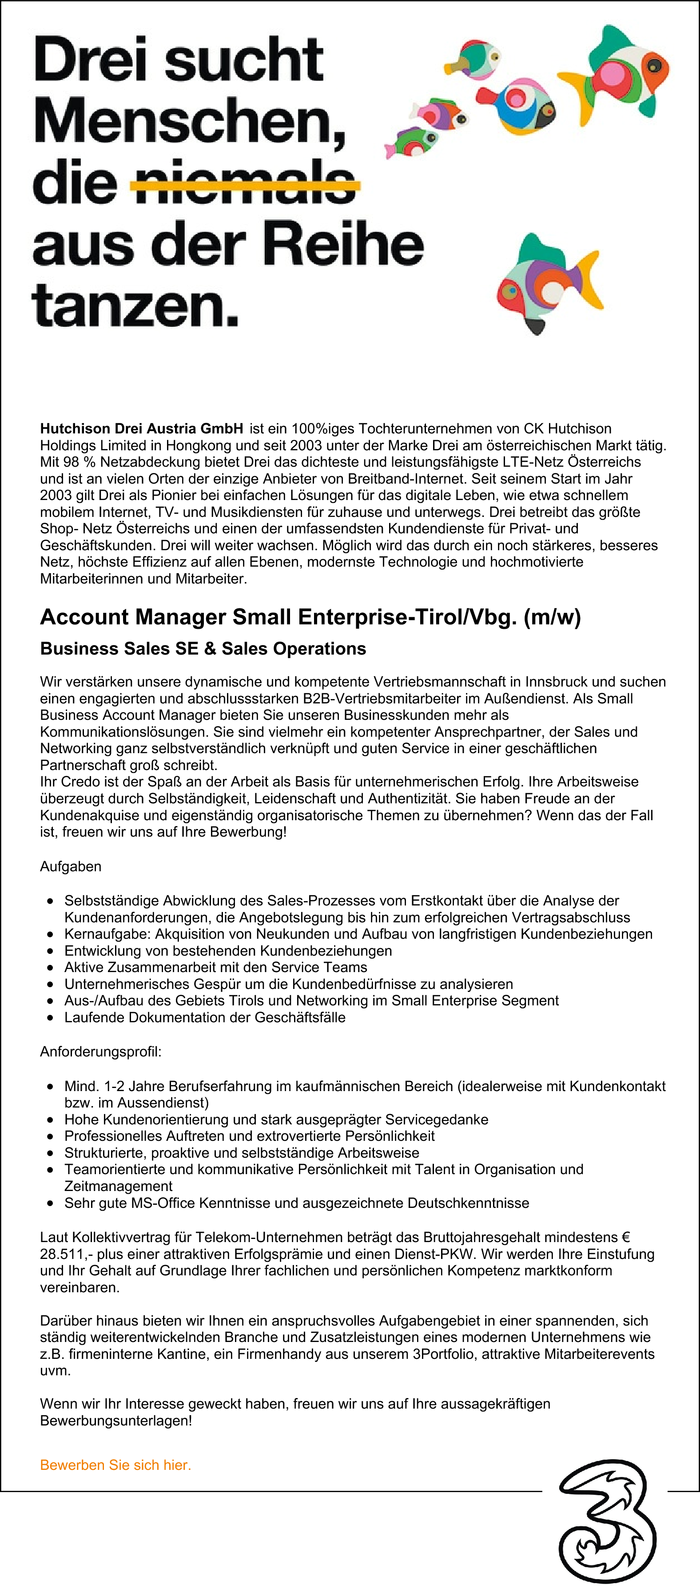 Account Manager Small Enterprise-Tirol/Vbg. (m/w)